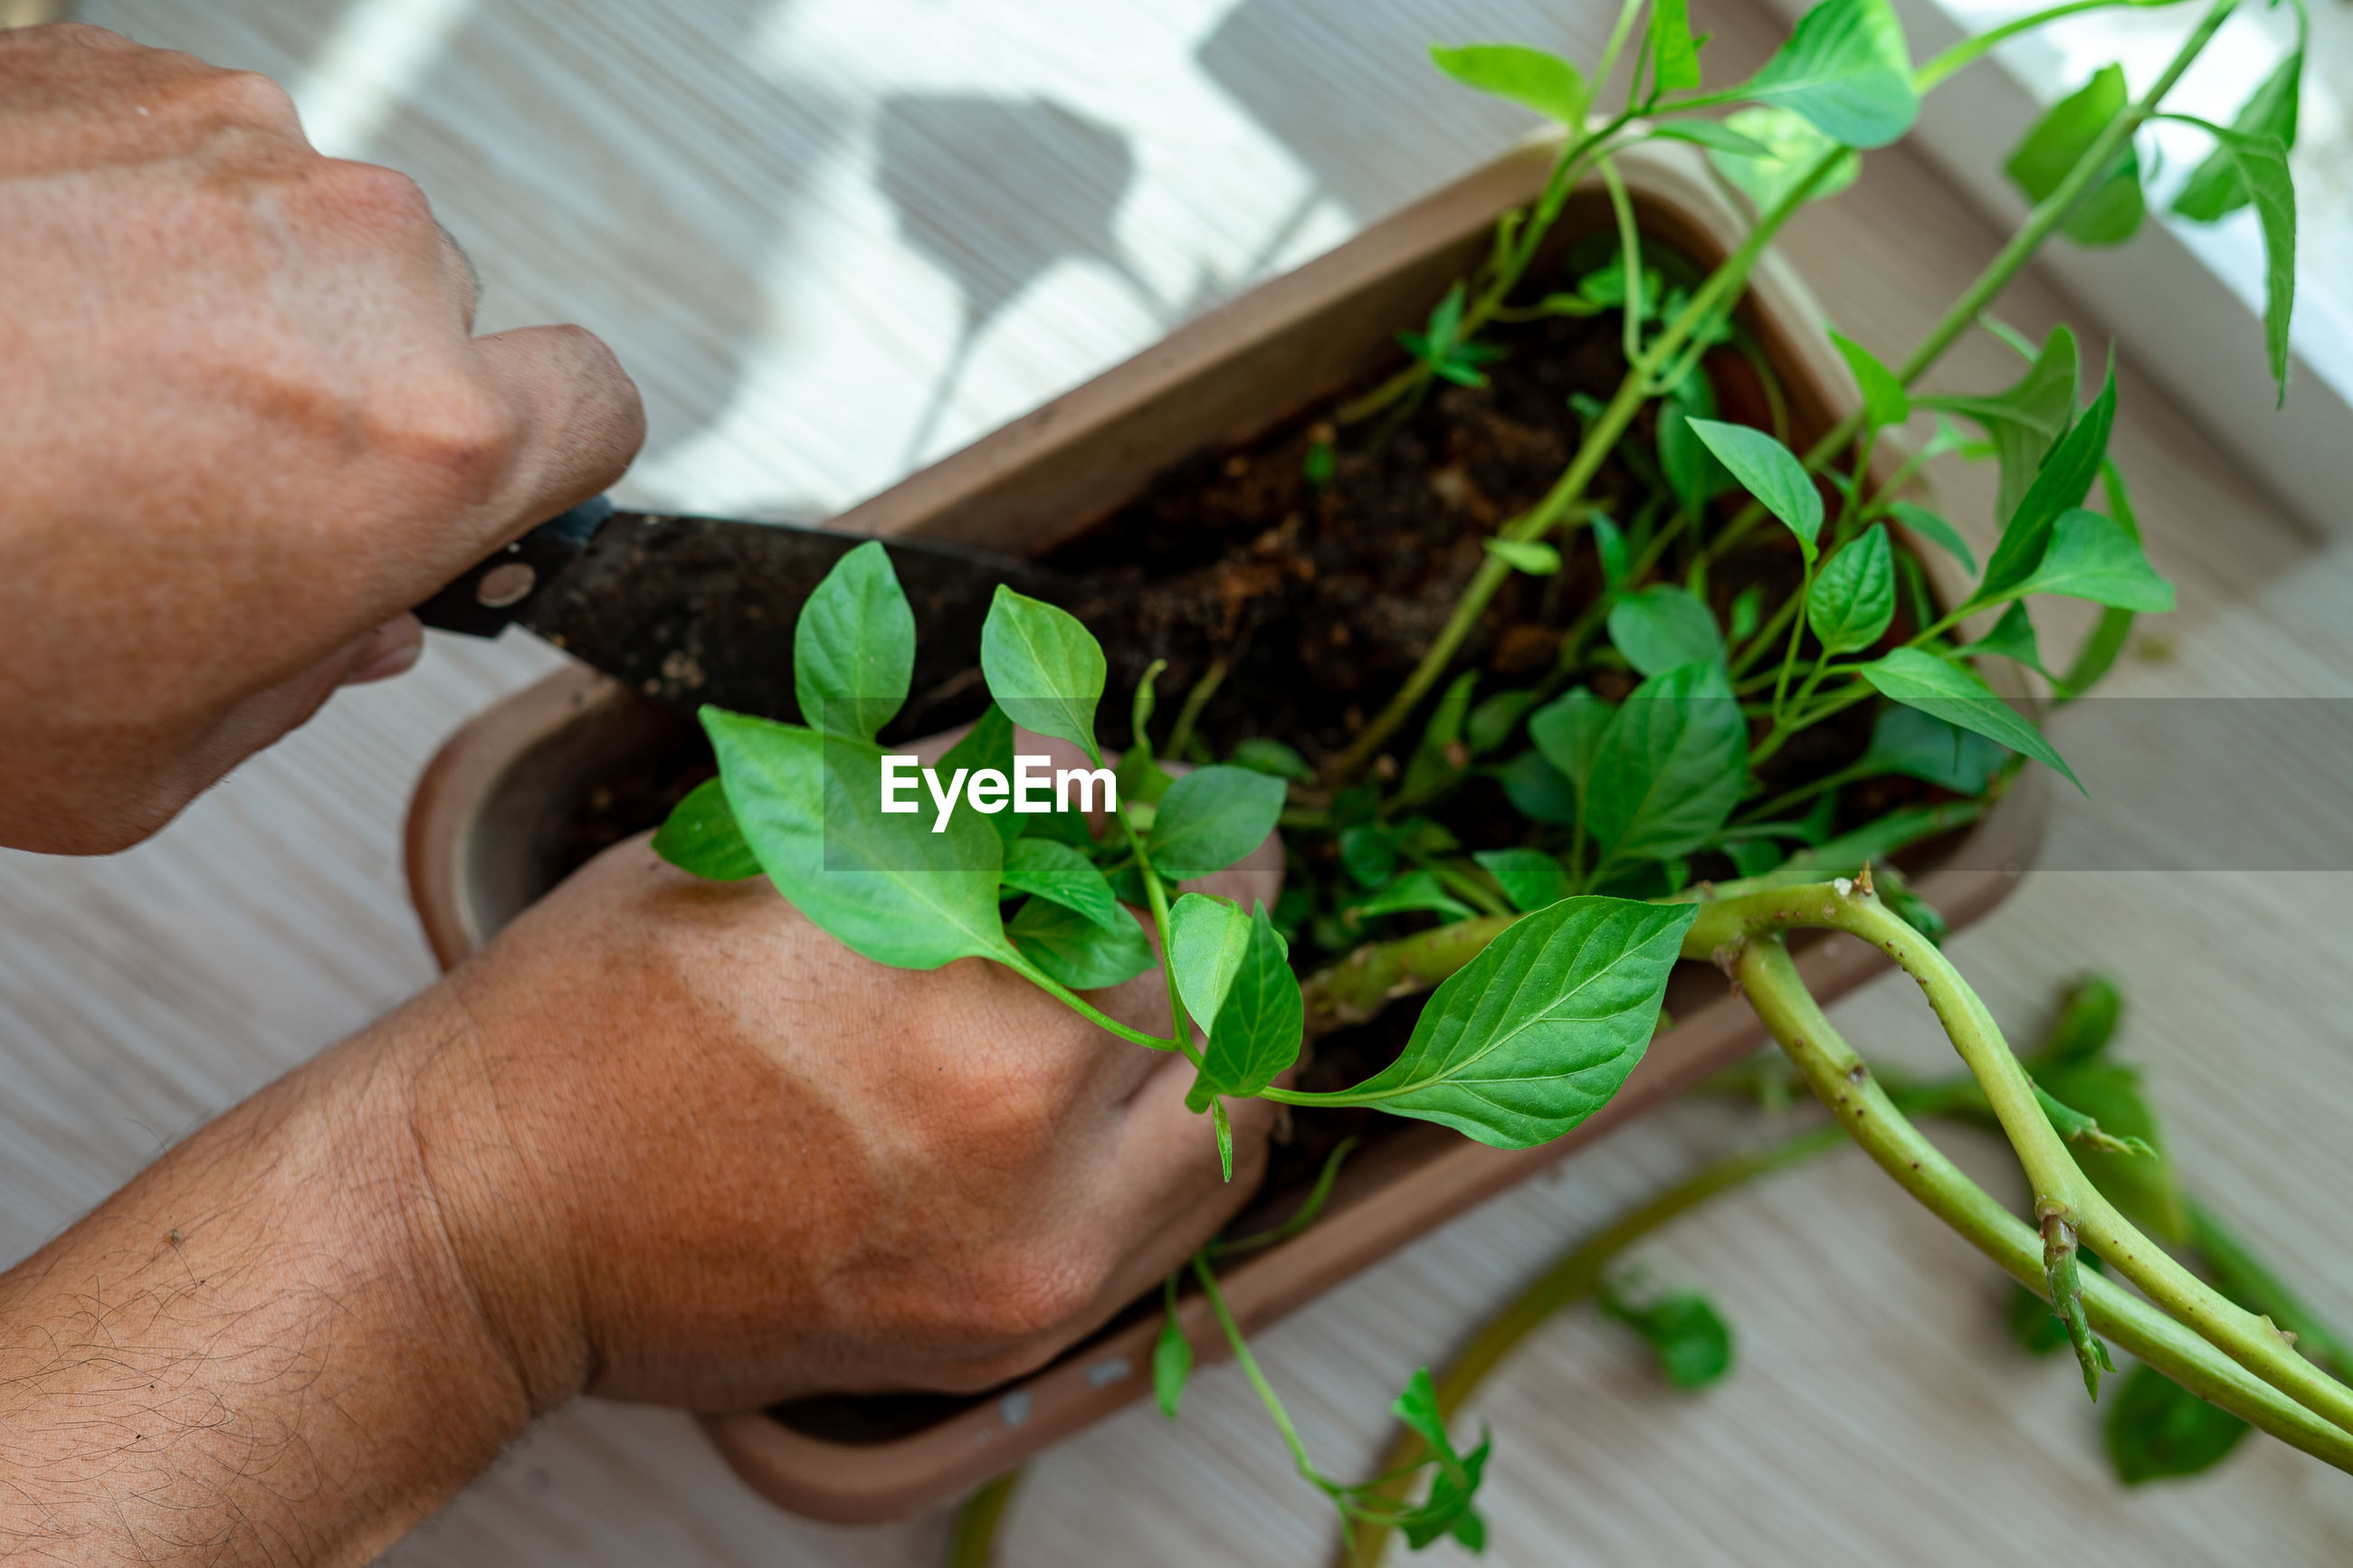 CROPPED IMAGE OF PERSON HOLDING POTTED PLANT